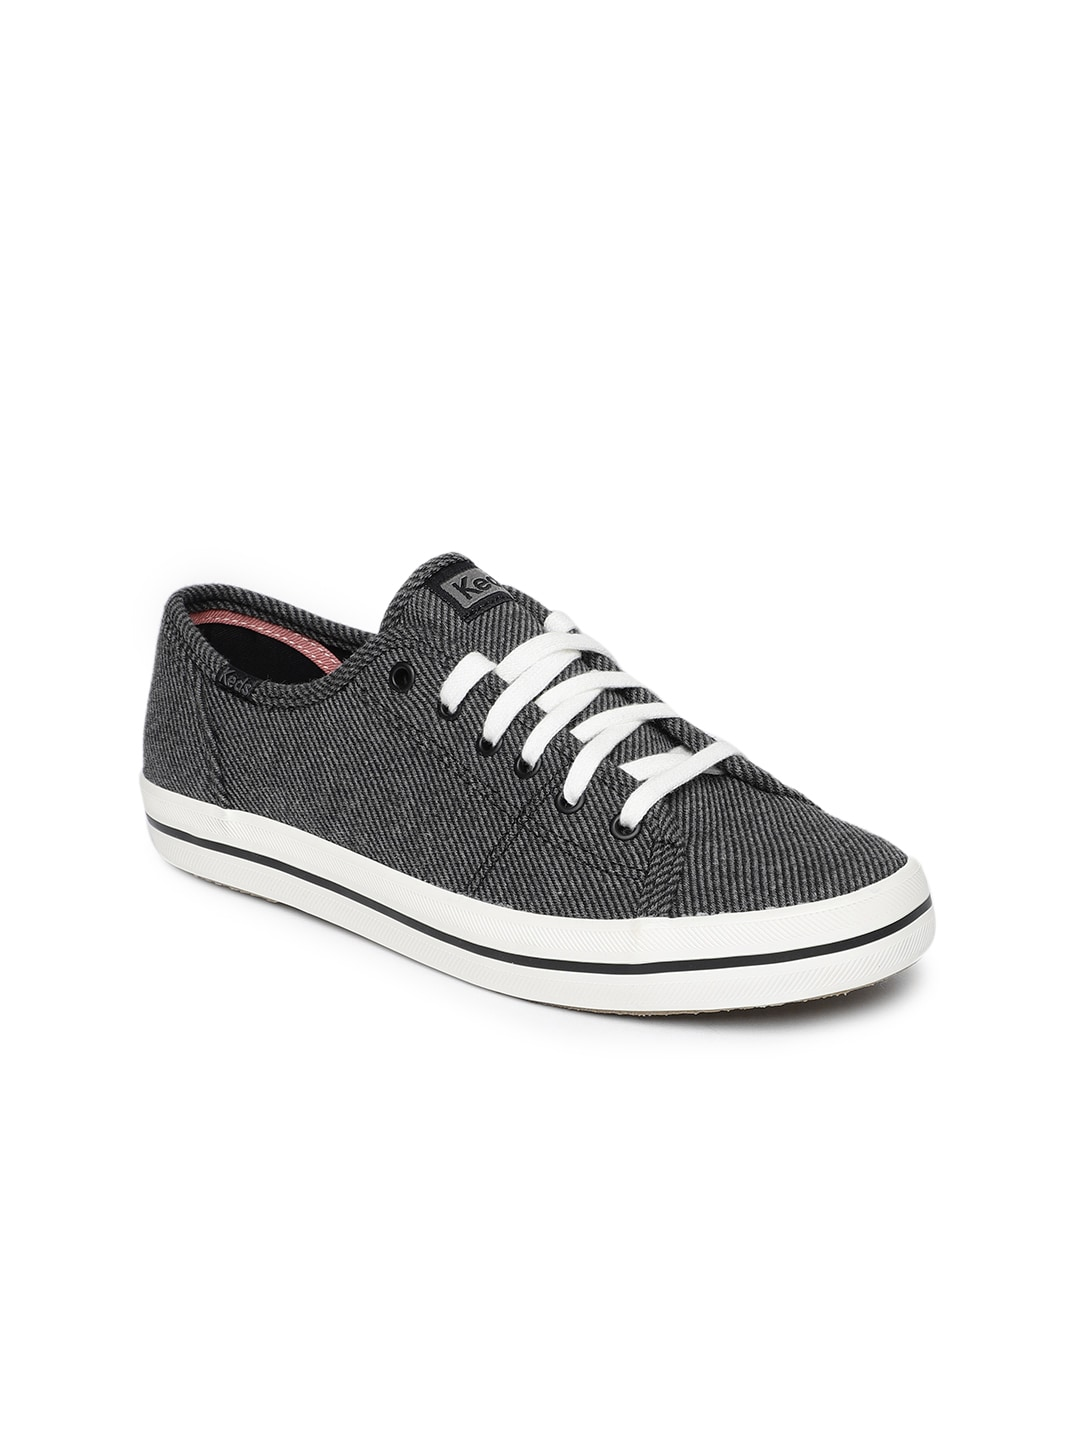 183a5567aaf Keds Store - Buy Footwears from Keds Store Online